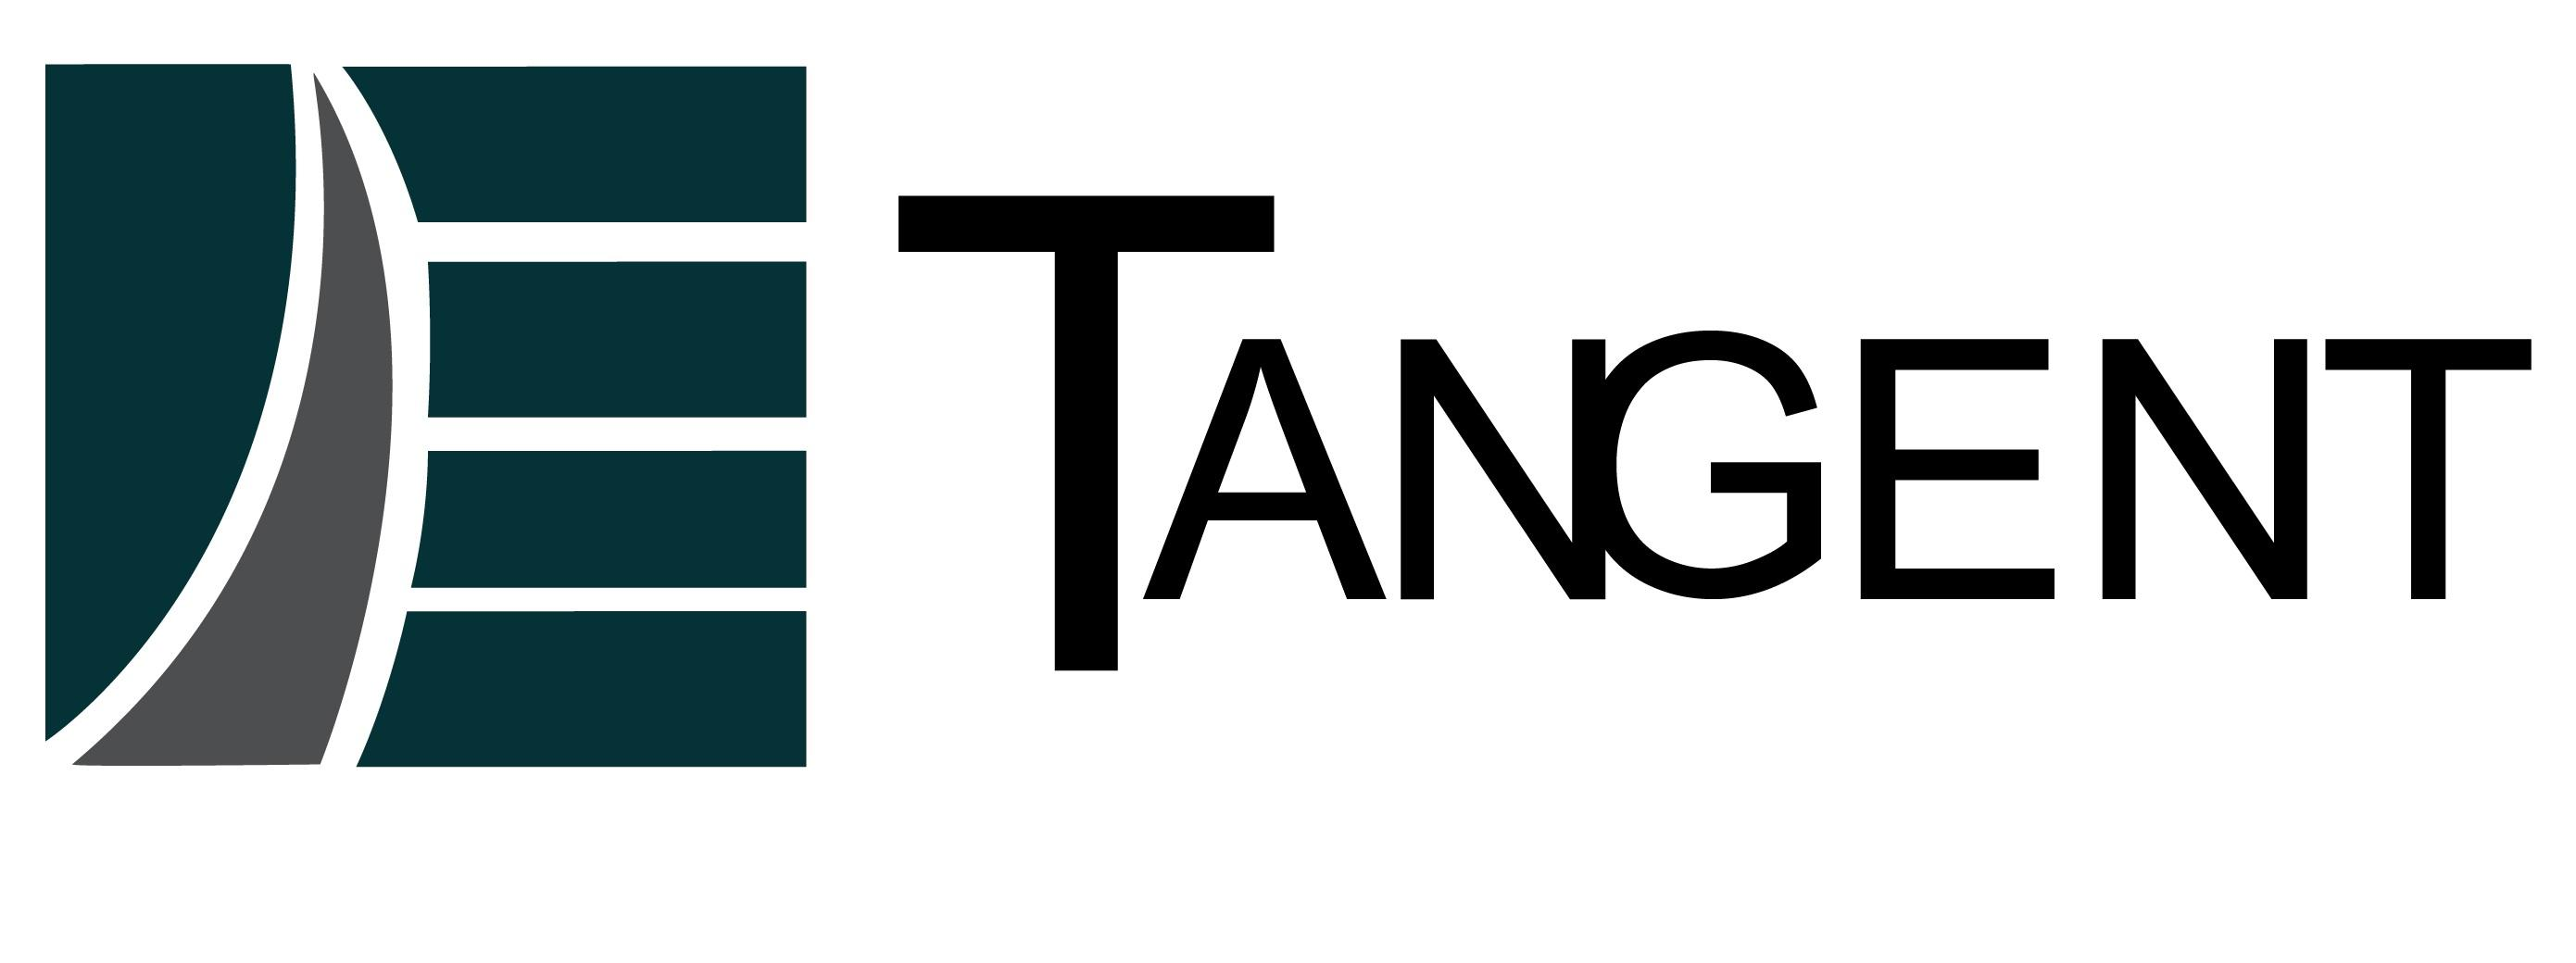 TANGENT SOLUTIONS INC.